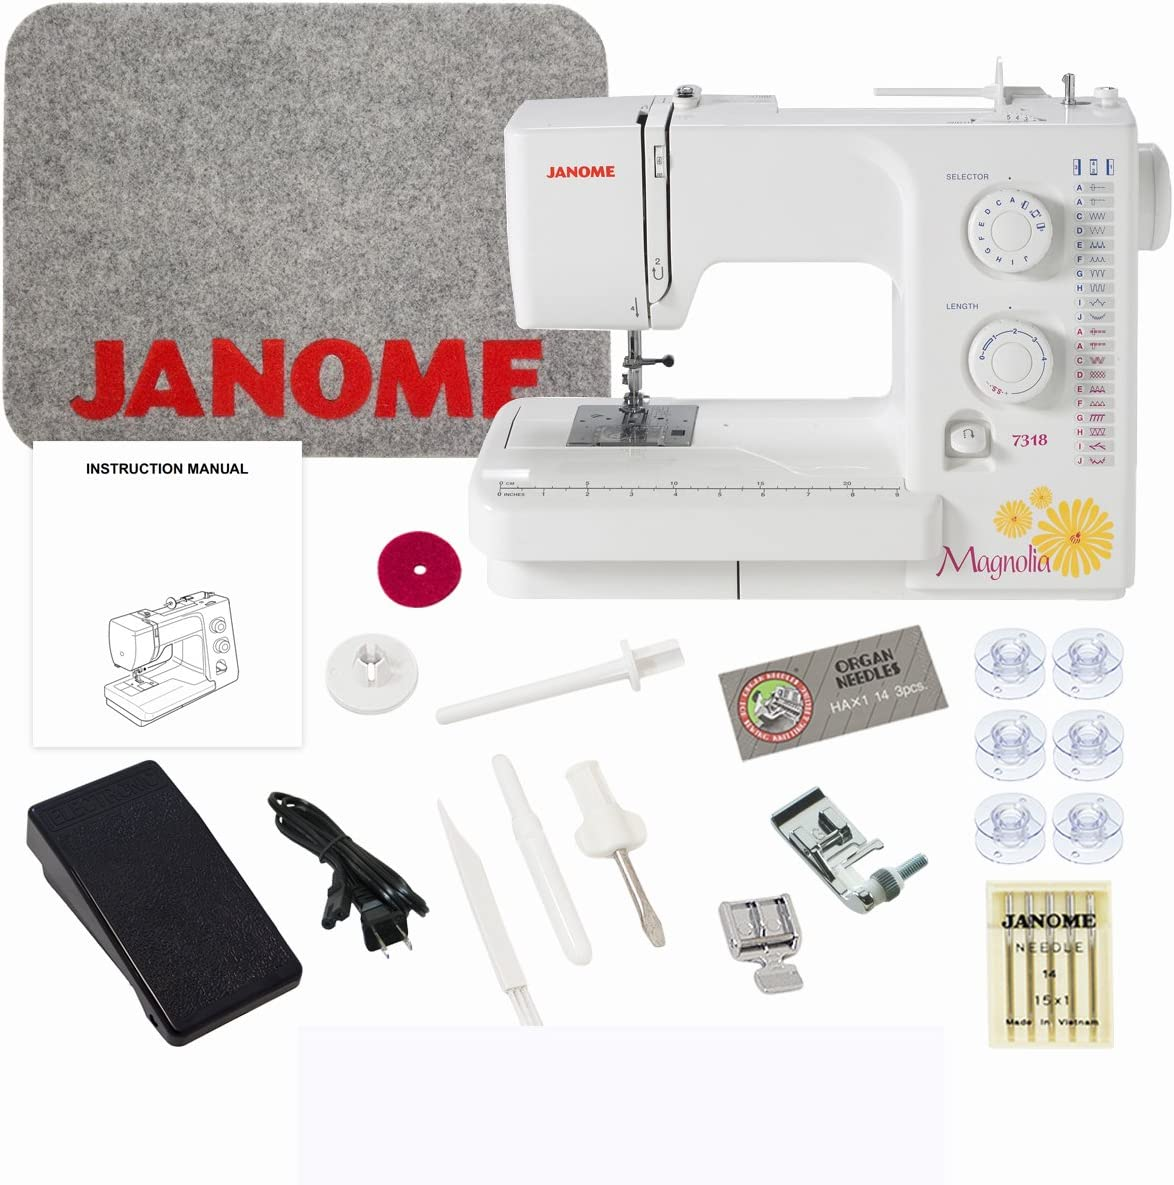 Janome Magnolia 7318 Sewing Reservation Machine National products Exclusive Bundle with